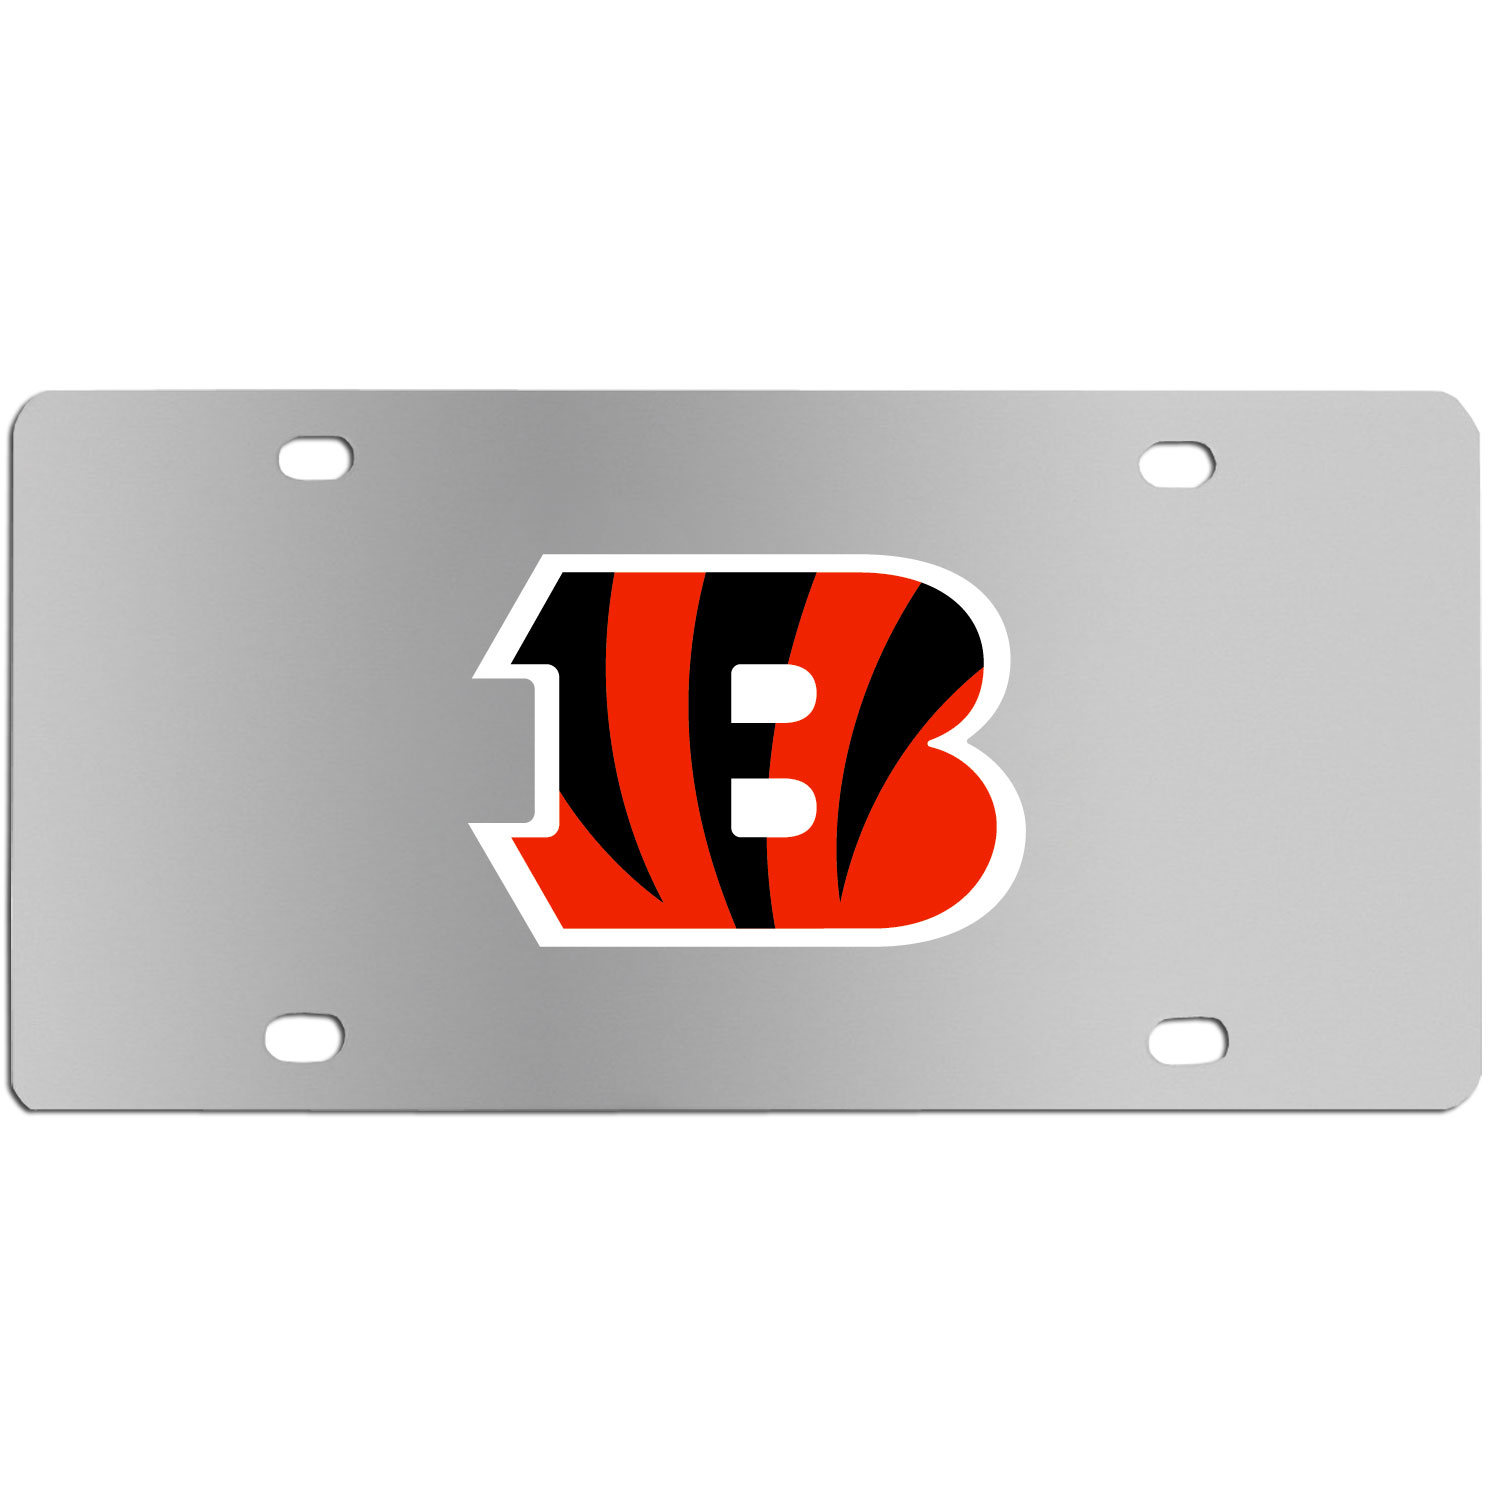 Cincinnati Bengals Steel License Plate Wall Plaque - This high-quality stainless steel license plate features a detailed team logo on a the polished surface. The attractive plate is perfect for wall mounting in your home or office to become the perfect die-hard Cincinnati Bengals fan decor.